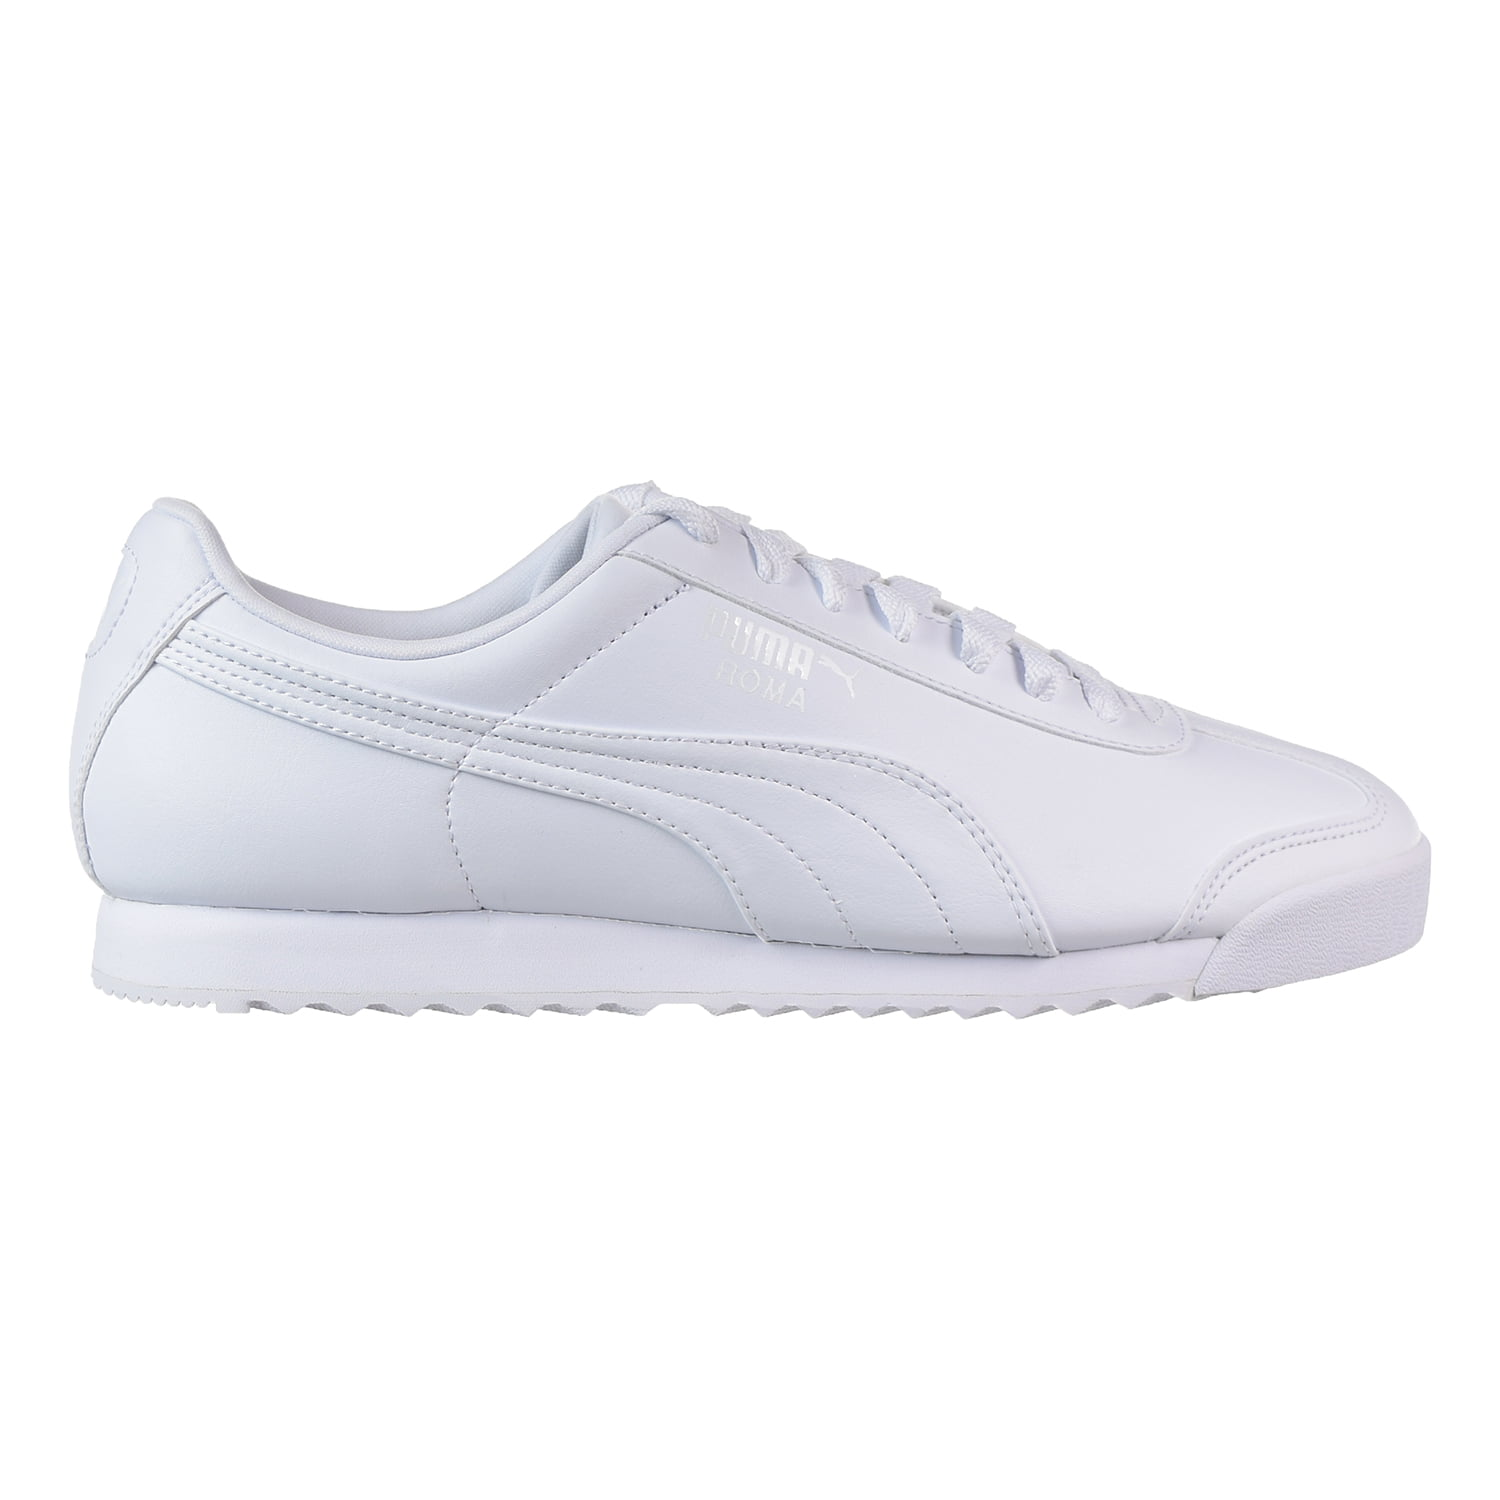 Puma Roma Basic    Round Toe Synthetic   Walking Shoe 544674